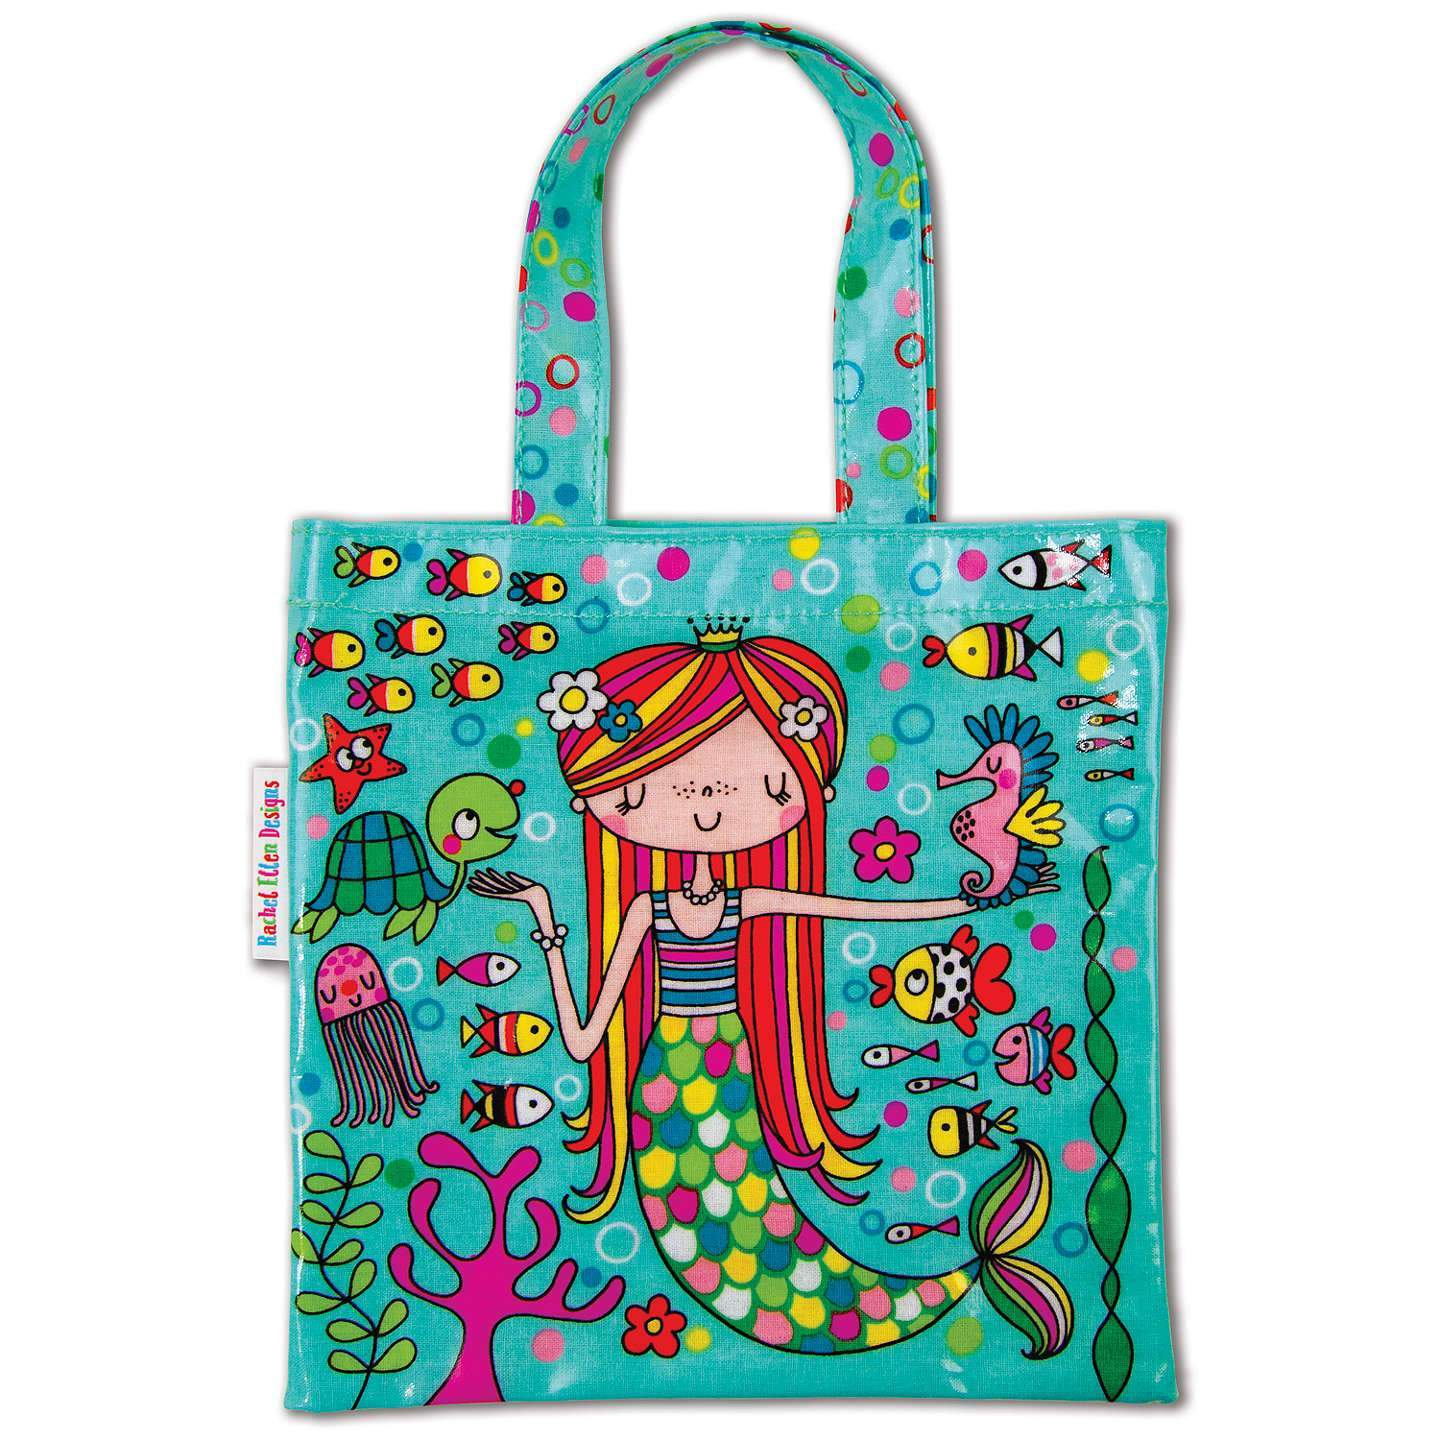 Mermaid Mini Tote Bag from Rachel Ellen